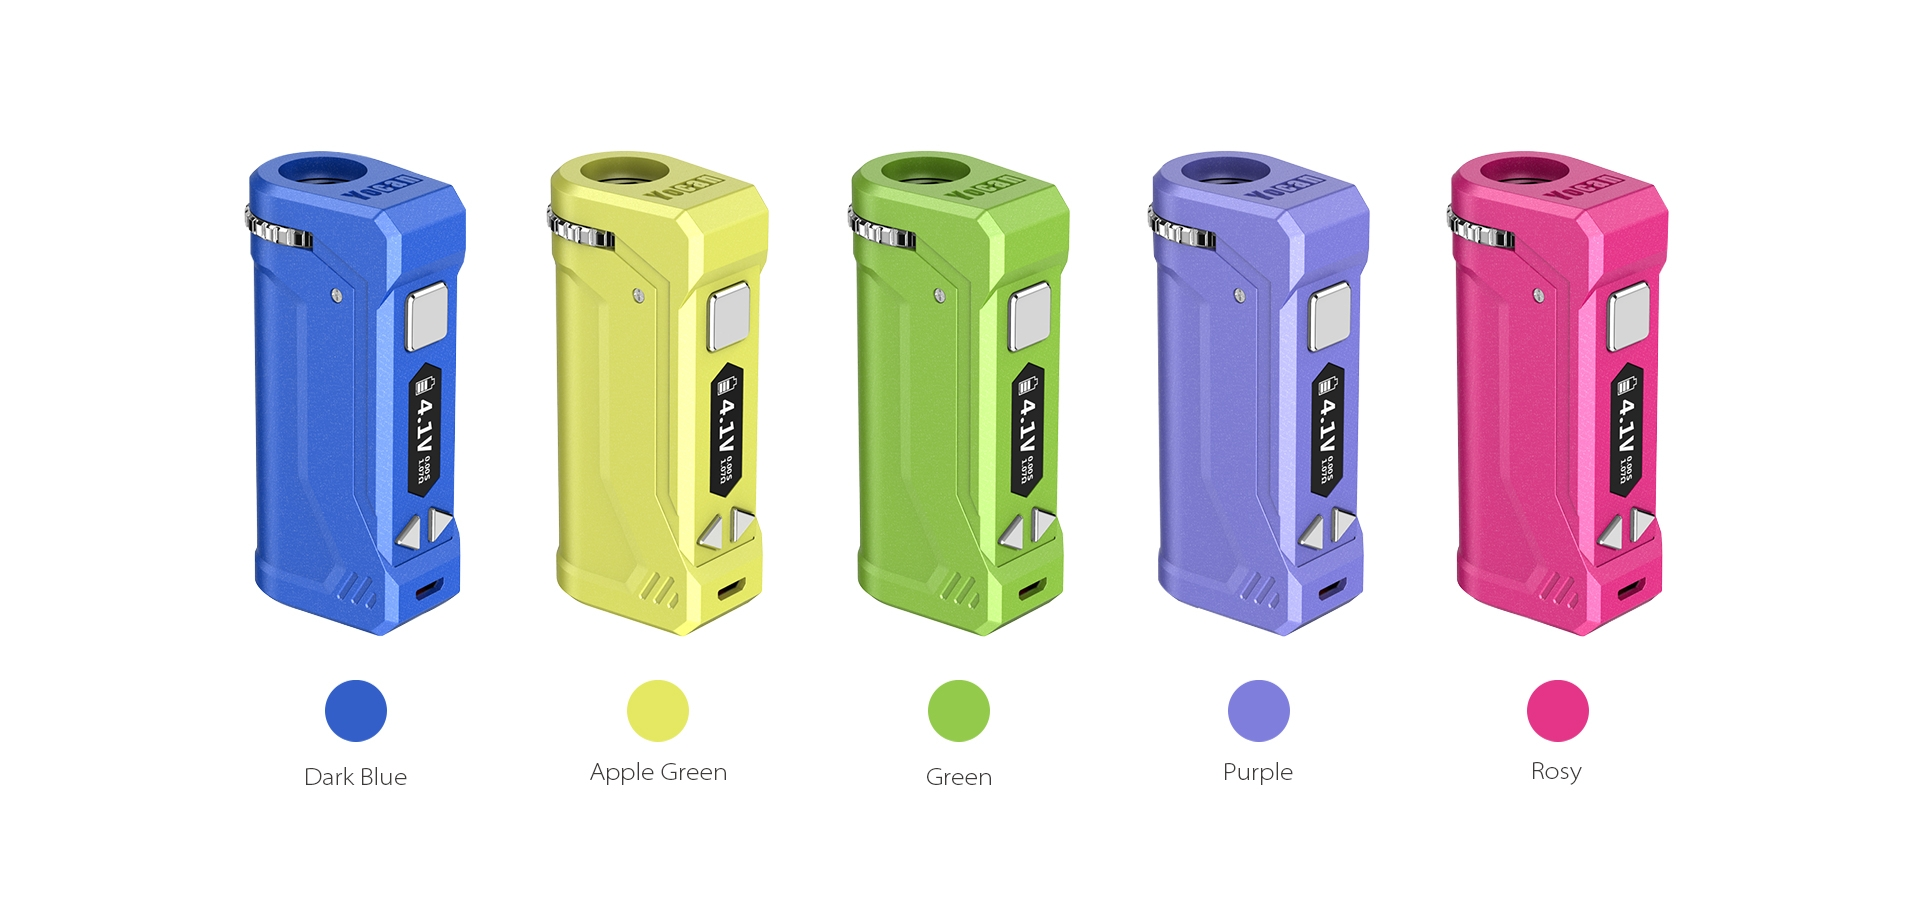 Yocan UNI Pro comes with 5 new colors.